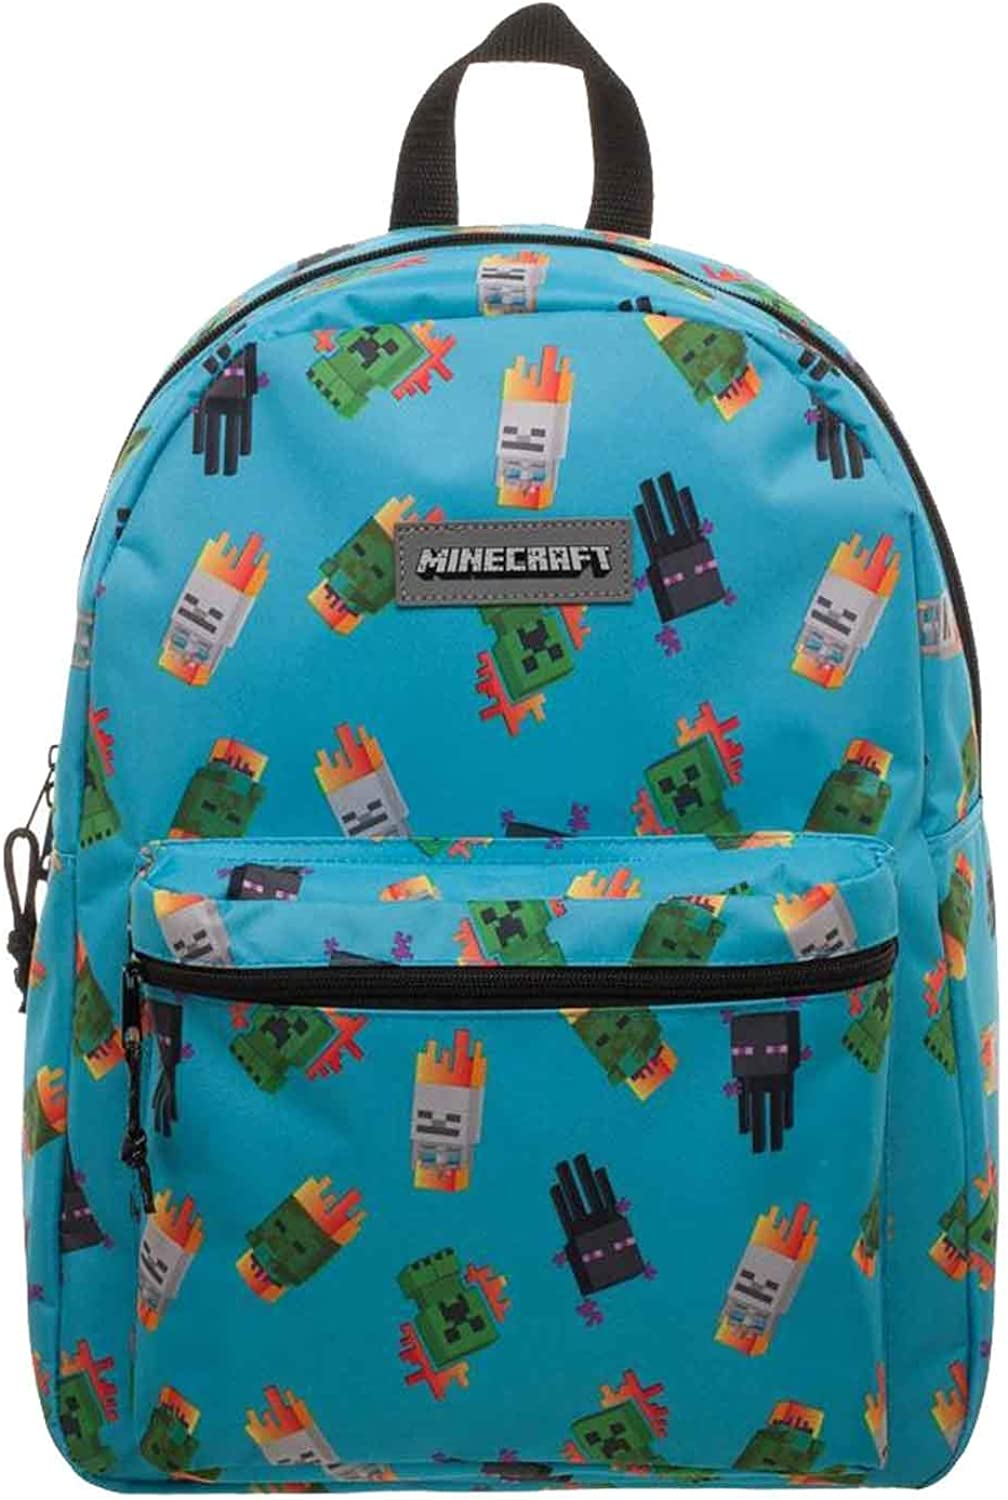 Bioworld Minecraft Backpack Enemy Print Borse